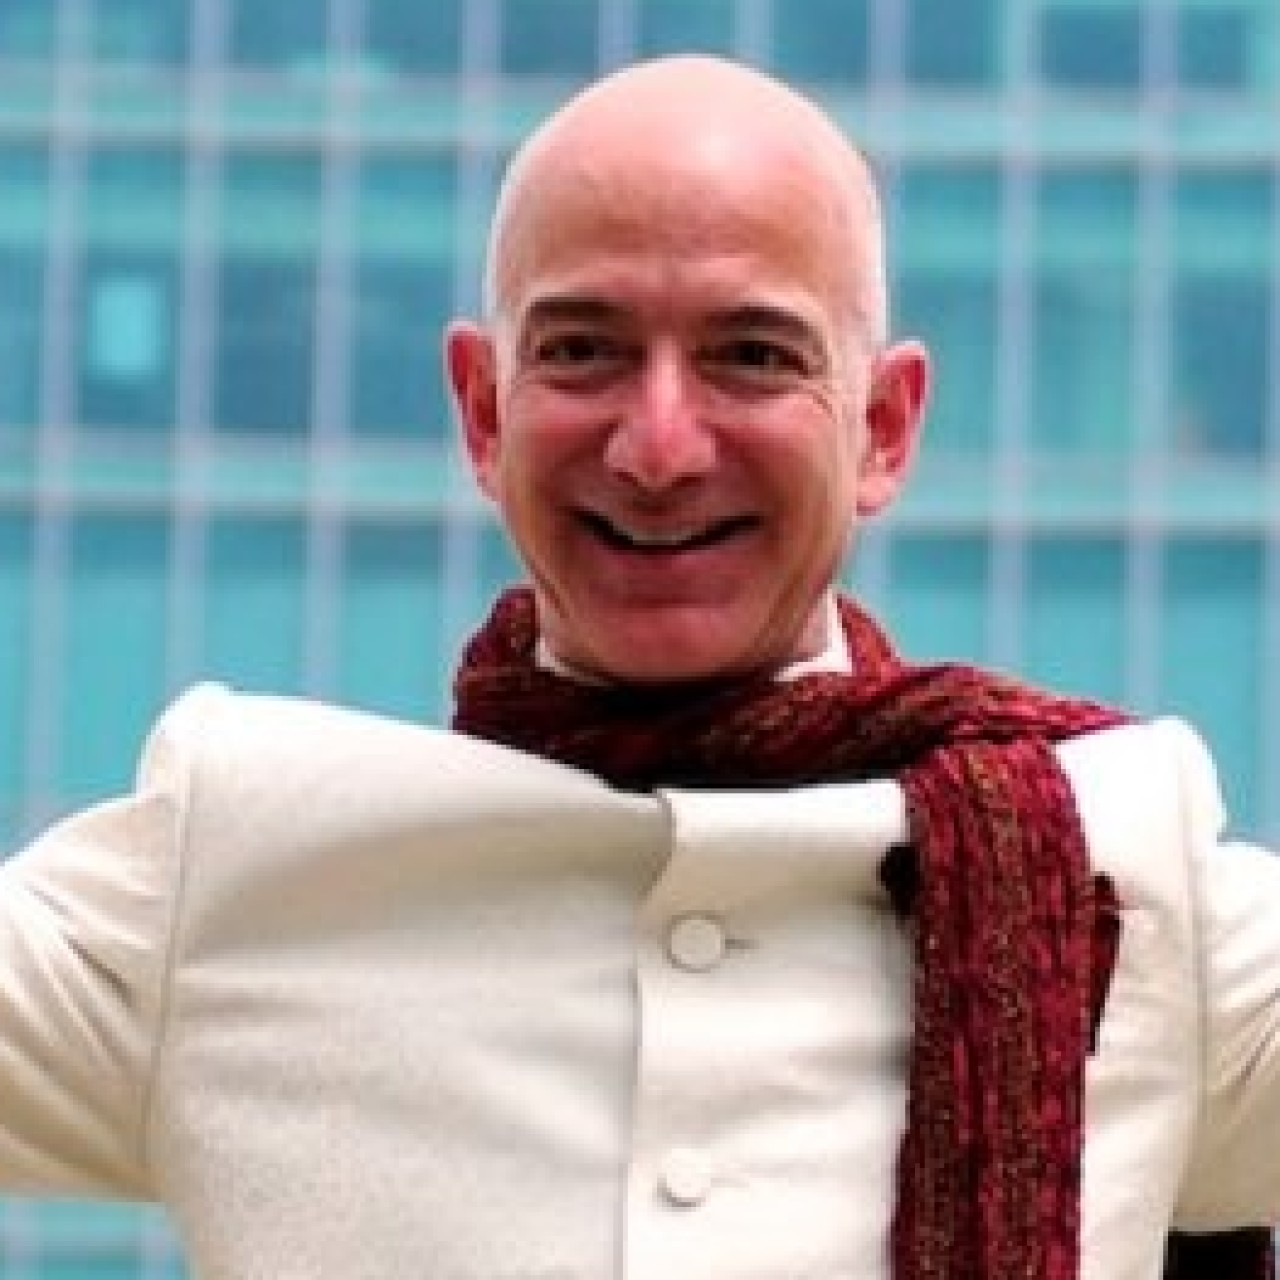 Has Amazon founder Jeff Bezos lost his place as the world's